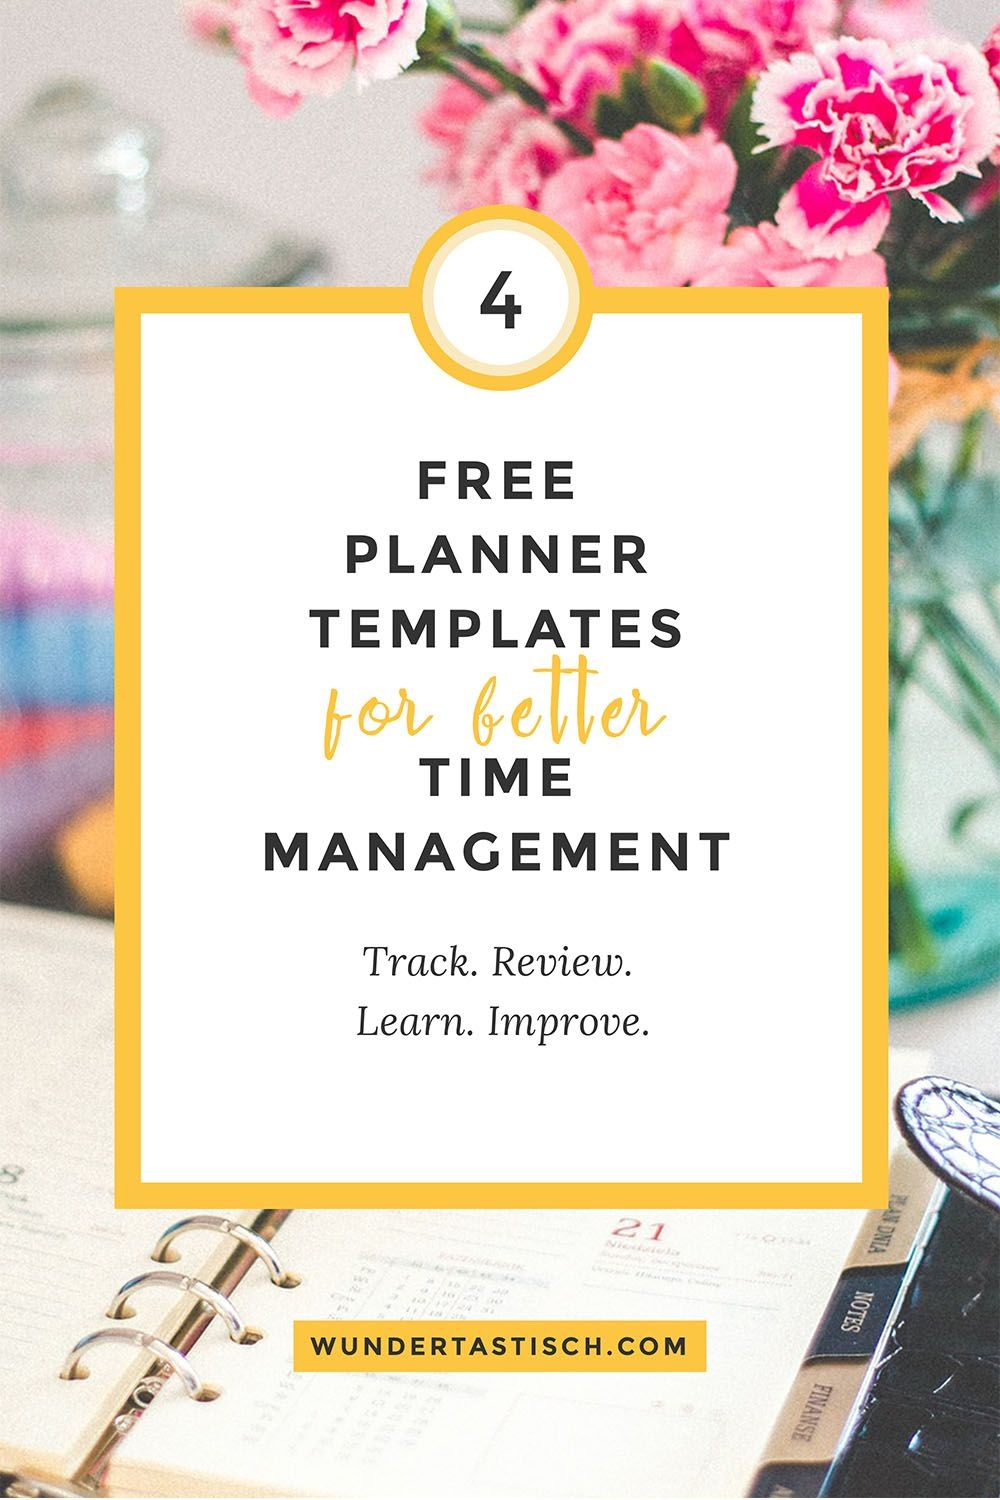 Free Planner Templates For Better Time Management